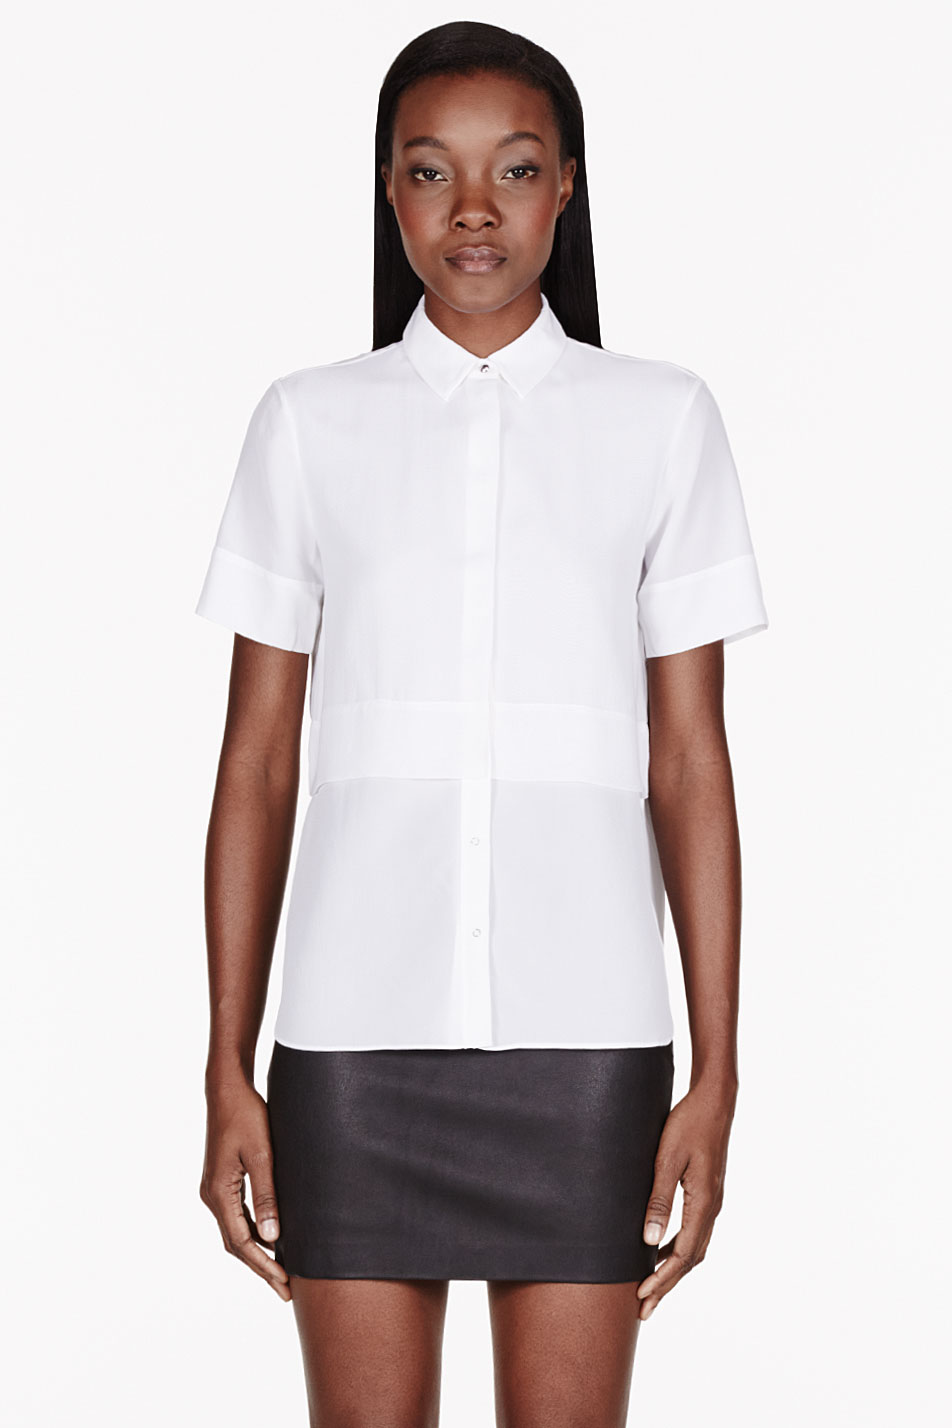 Shop UNIQLO for a wide variety of women's casual shirts, blouses and work shirts. Shop from women's button down shirts, women's denim shirts, women's linen shirts, women's oxford shirts, and silky blouses. Choose from short sleeve blouses, 3/4 length sleeve blouses and long sleeve women's shirts. UNIQLO .